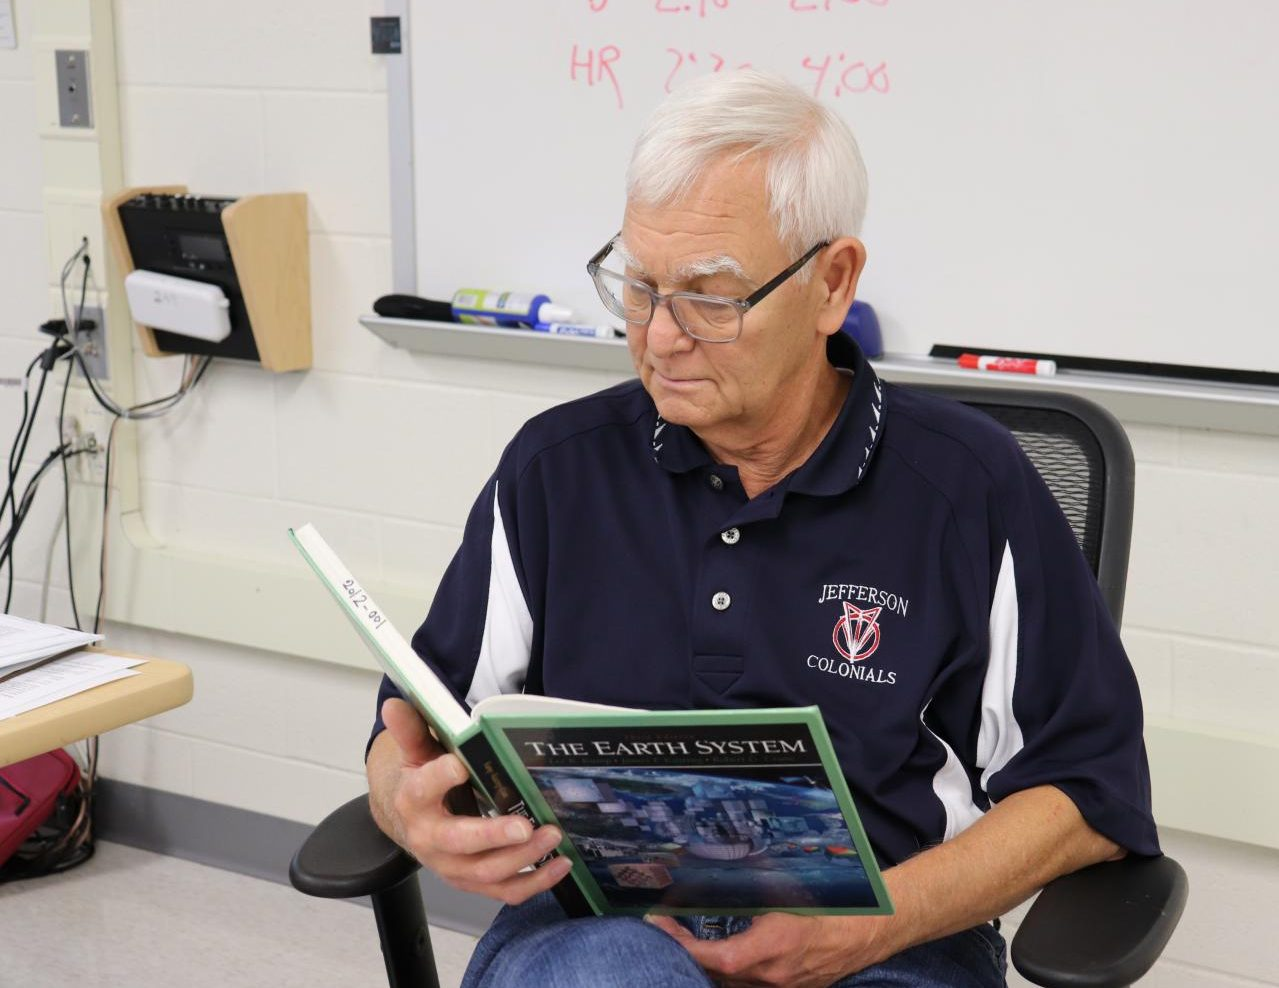 For his current role as a long-term geosystems substitute, retired Jefferson physics teacher James Rose refers to resources such as the textbook to better prepare for each day of class.